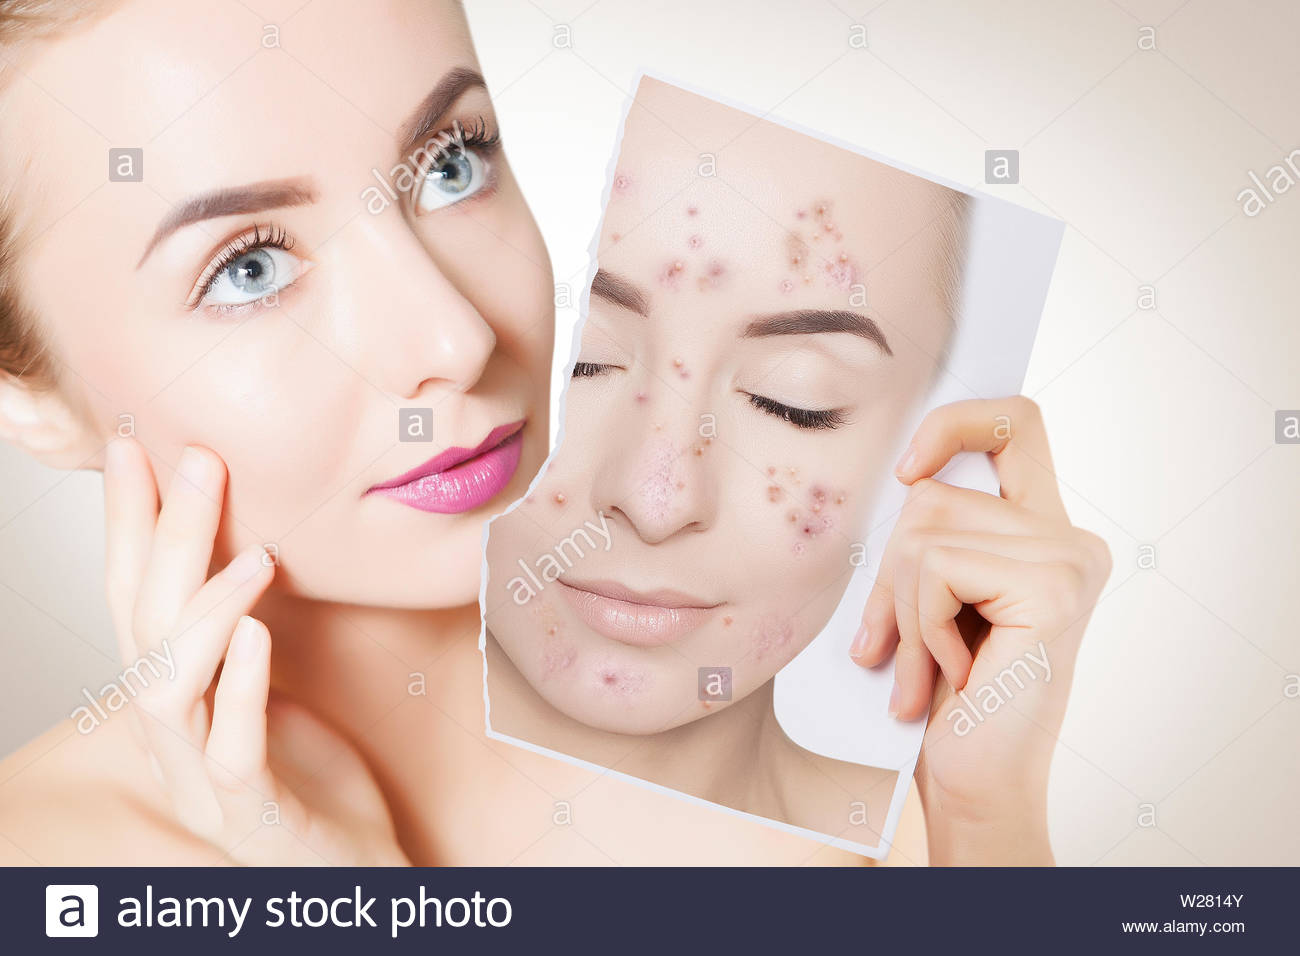 closeup portrait of woman with clean skin holding portrait with pimpled skin - Stock Image